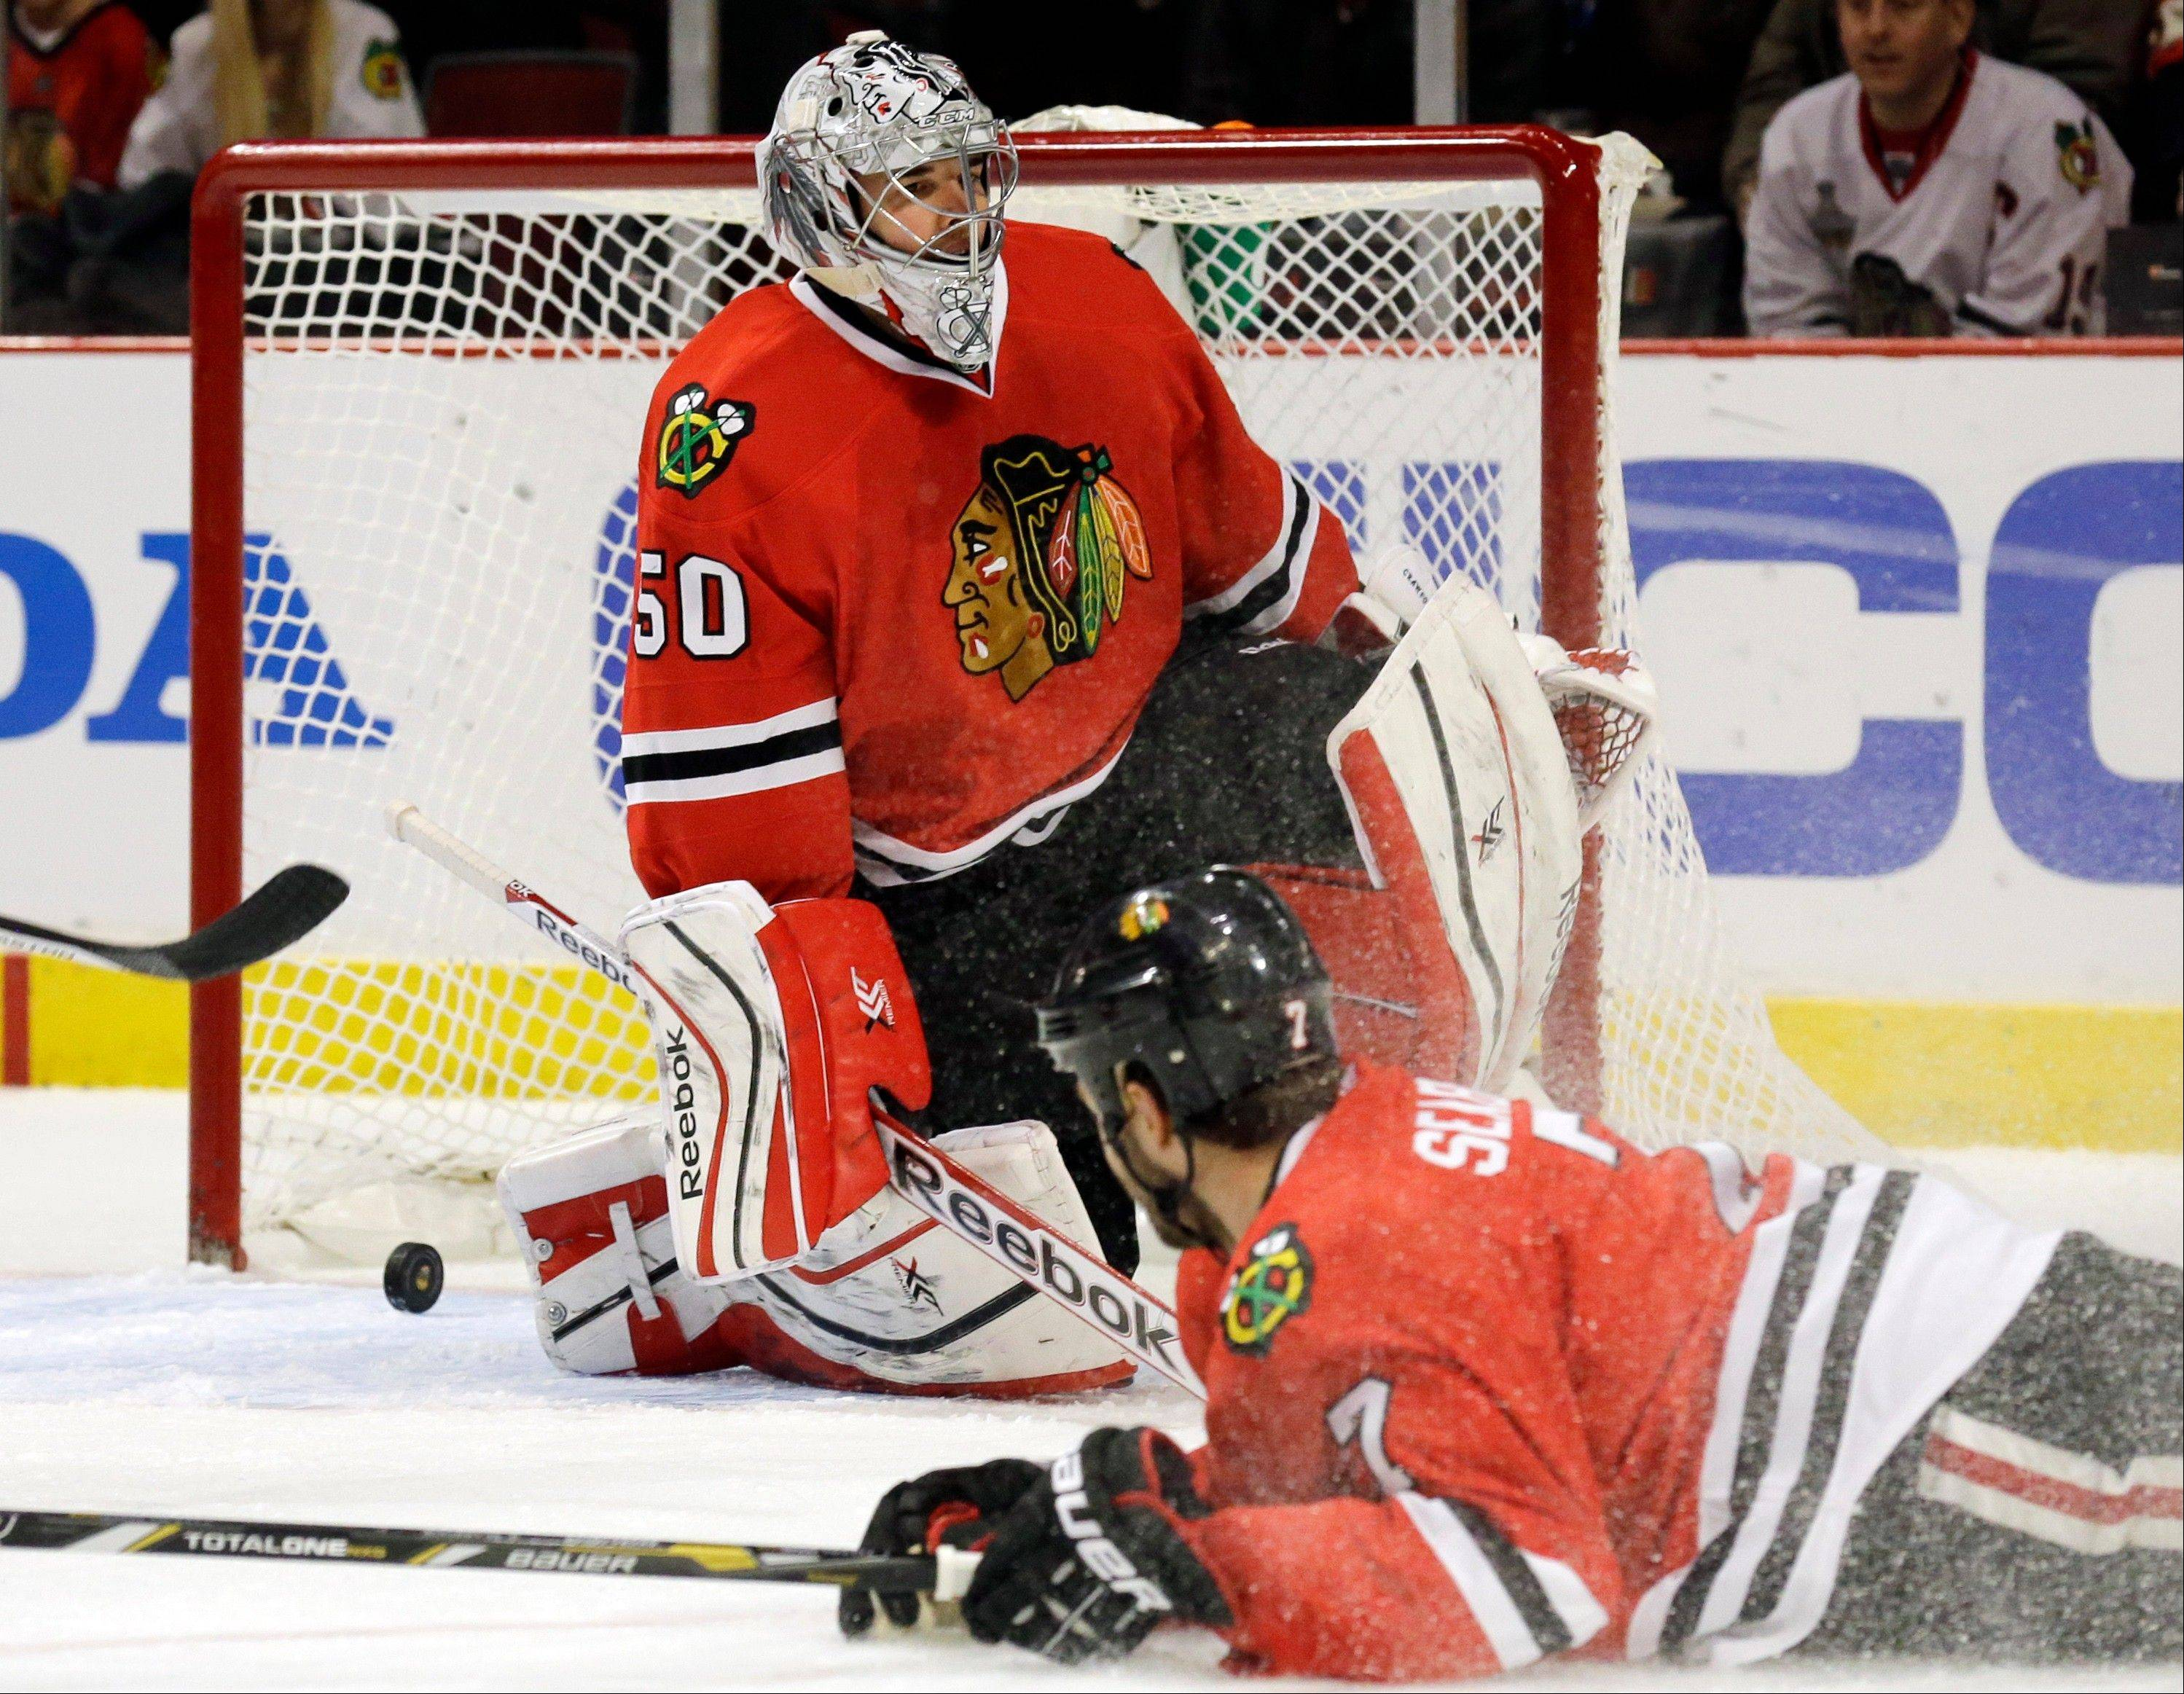 Chicago Blackhawks goalie Corey Crawford (50) reacts after New York Rangers' Brad Richards (not shown) scored a goal during the first period of an NHL hockey game in Chicago, Wednesday, Jan. 8, 2014.